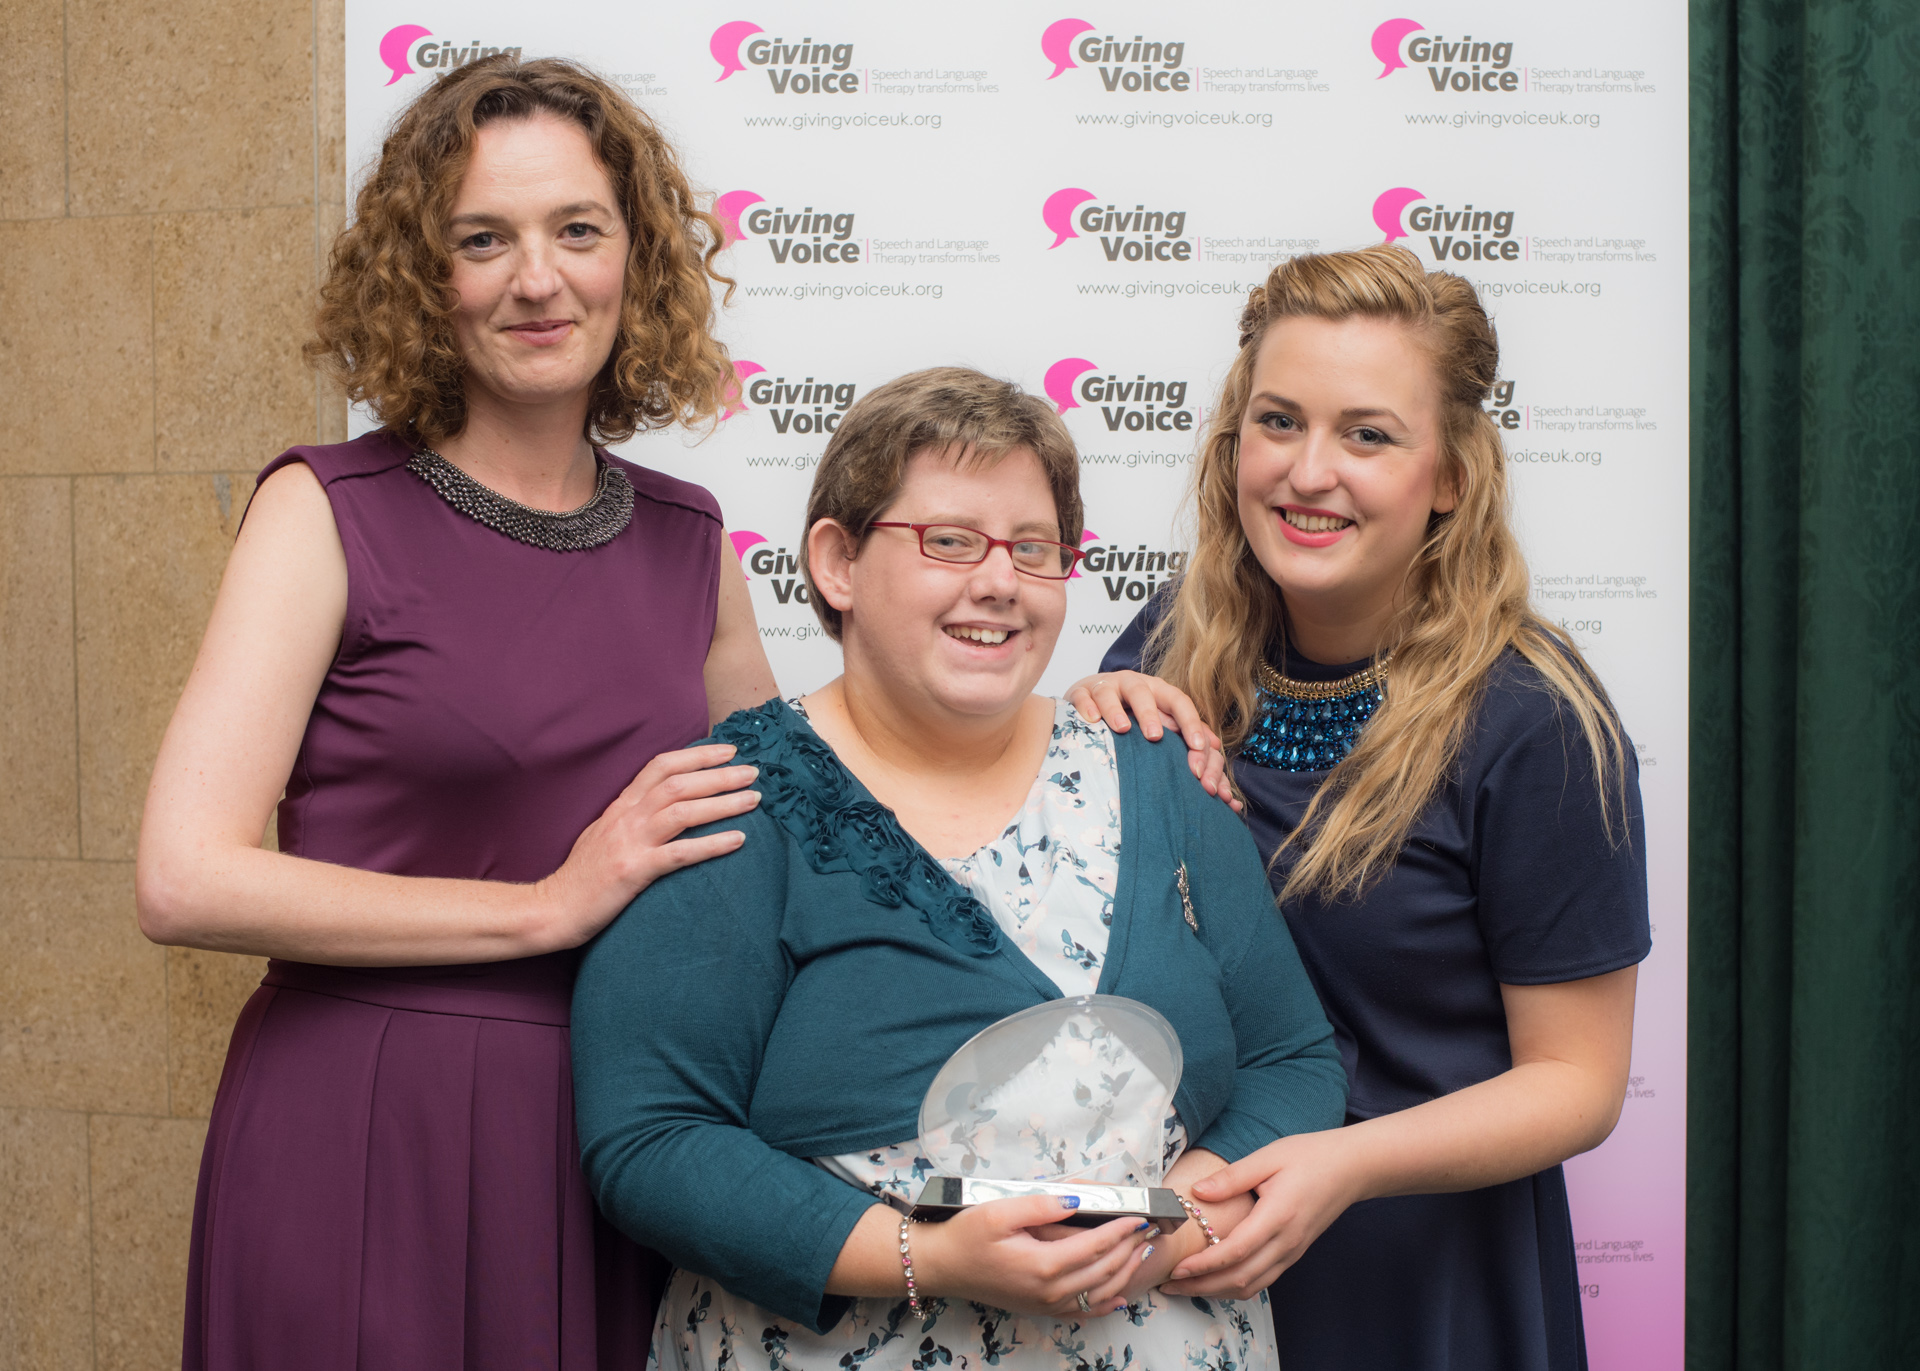 Pictured centre - Christine Birney at the Giving Voice awards ceremony in London with her guests, Sharon McEvoy (L) and Kay Johnston (R).